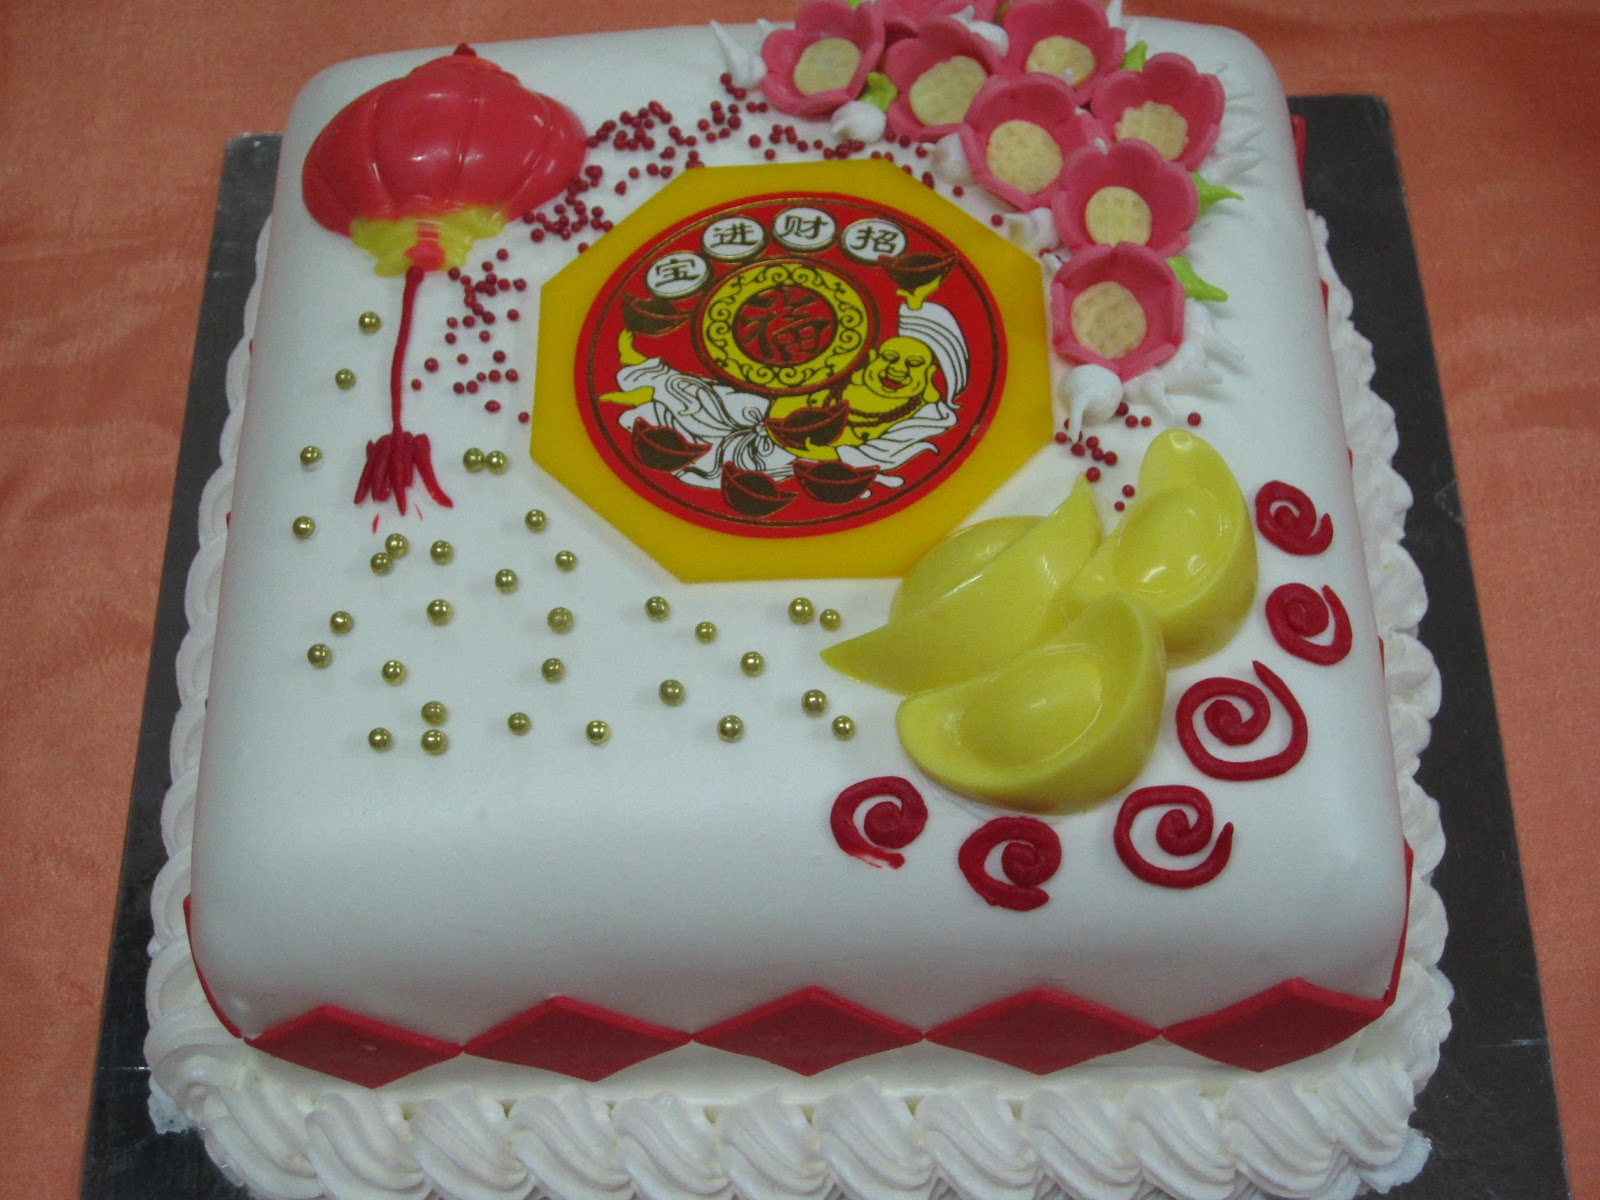 Design Kue Tart Cake Ideas And Designs